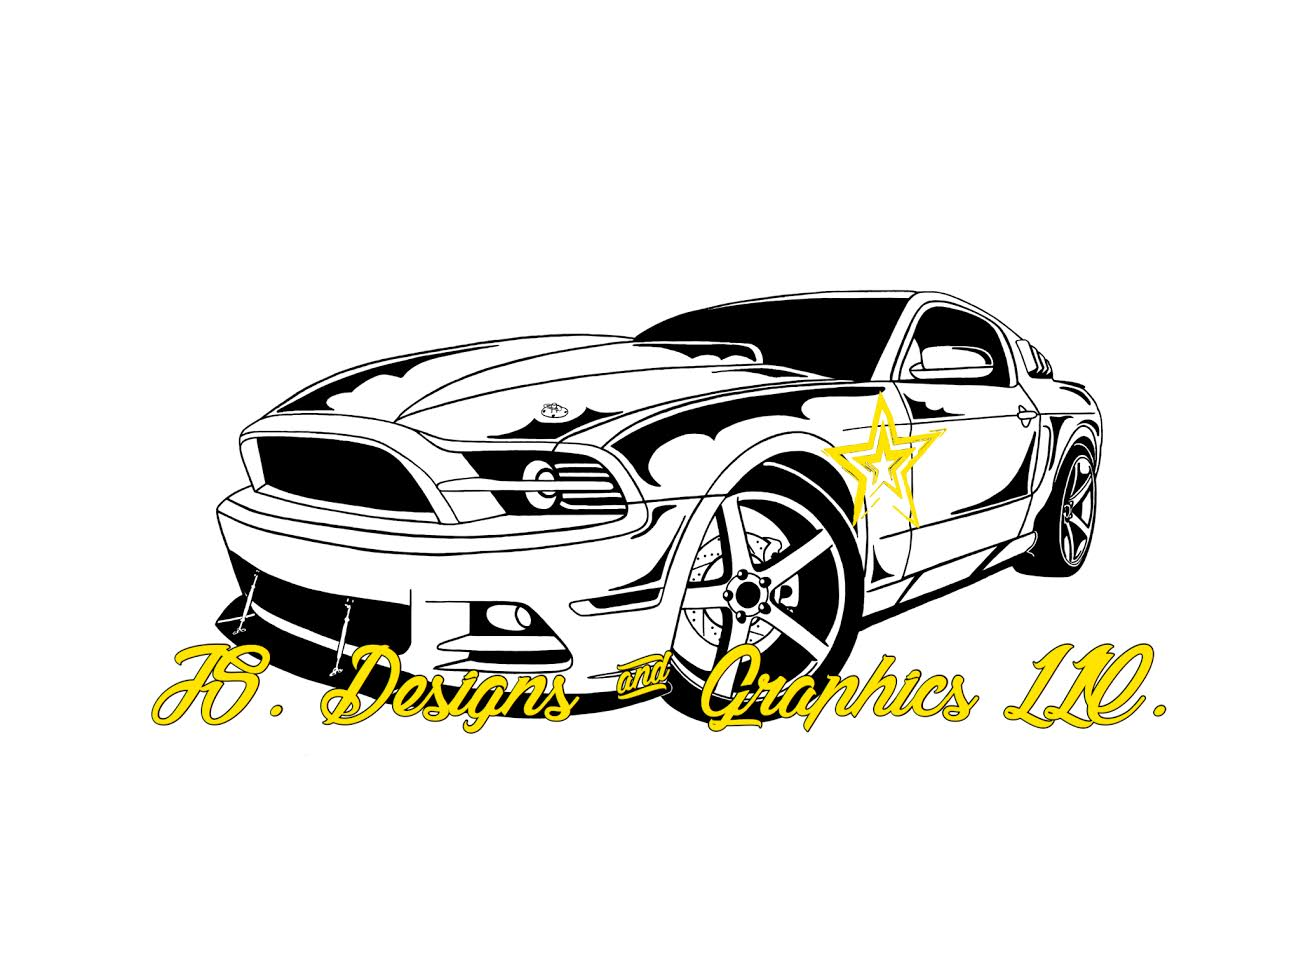 JS. Designs & Graphics LLC